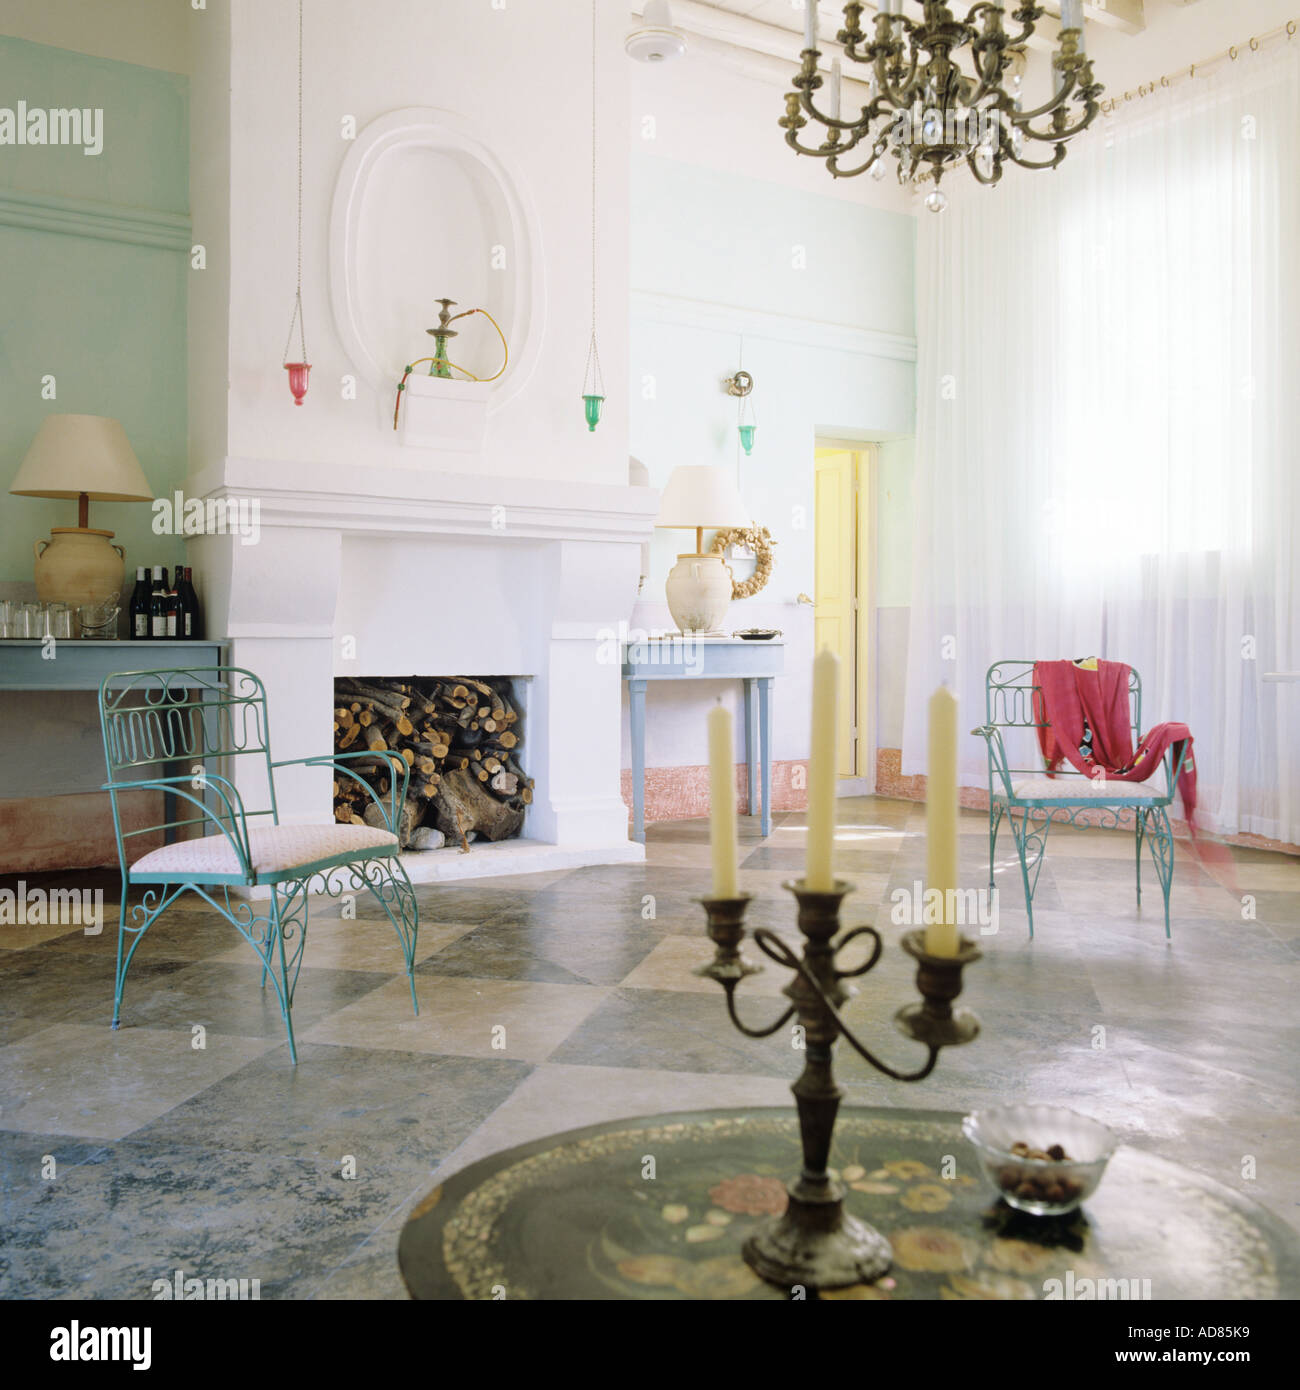 Charming Candelabra On Round Table In Entrance Hall With Checkered Marble Floor